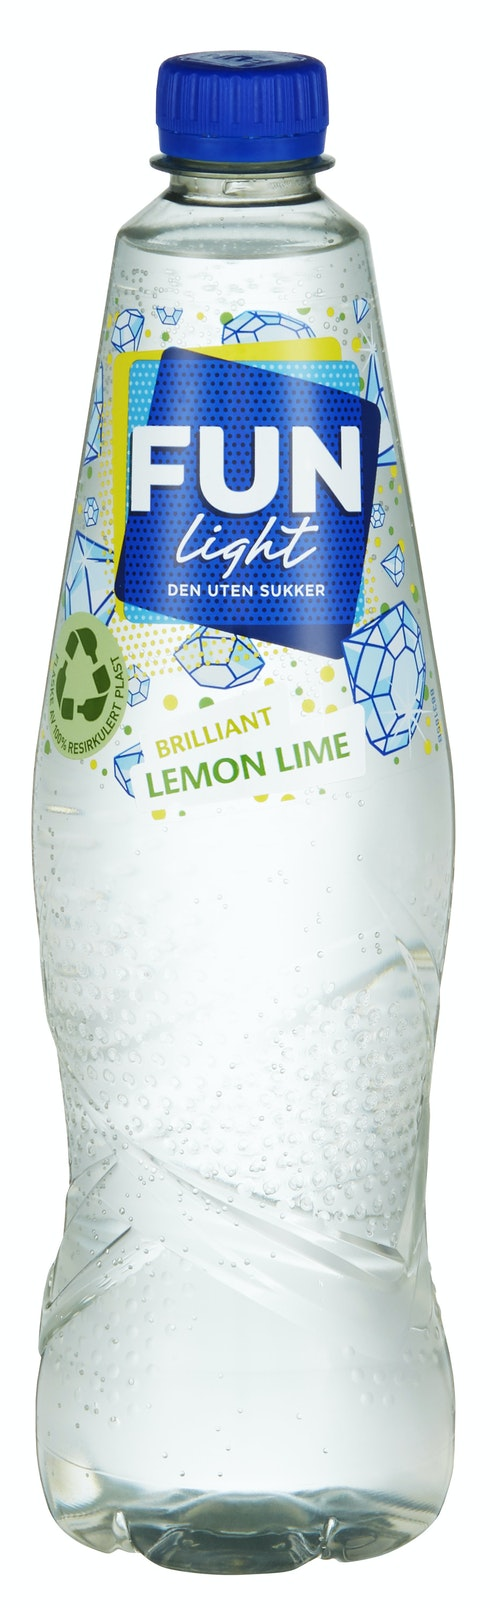 Fun Light Lemon Lime 0,8 l